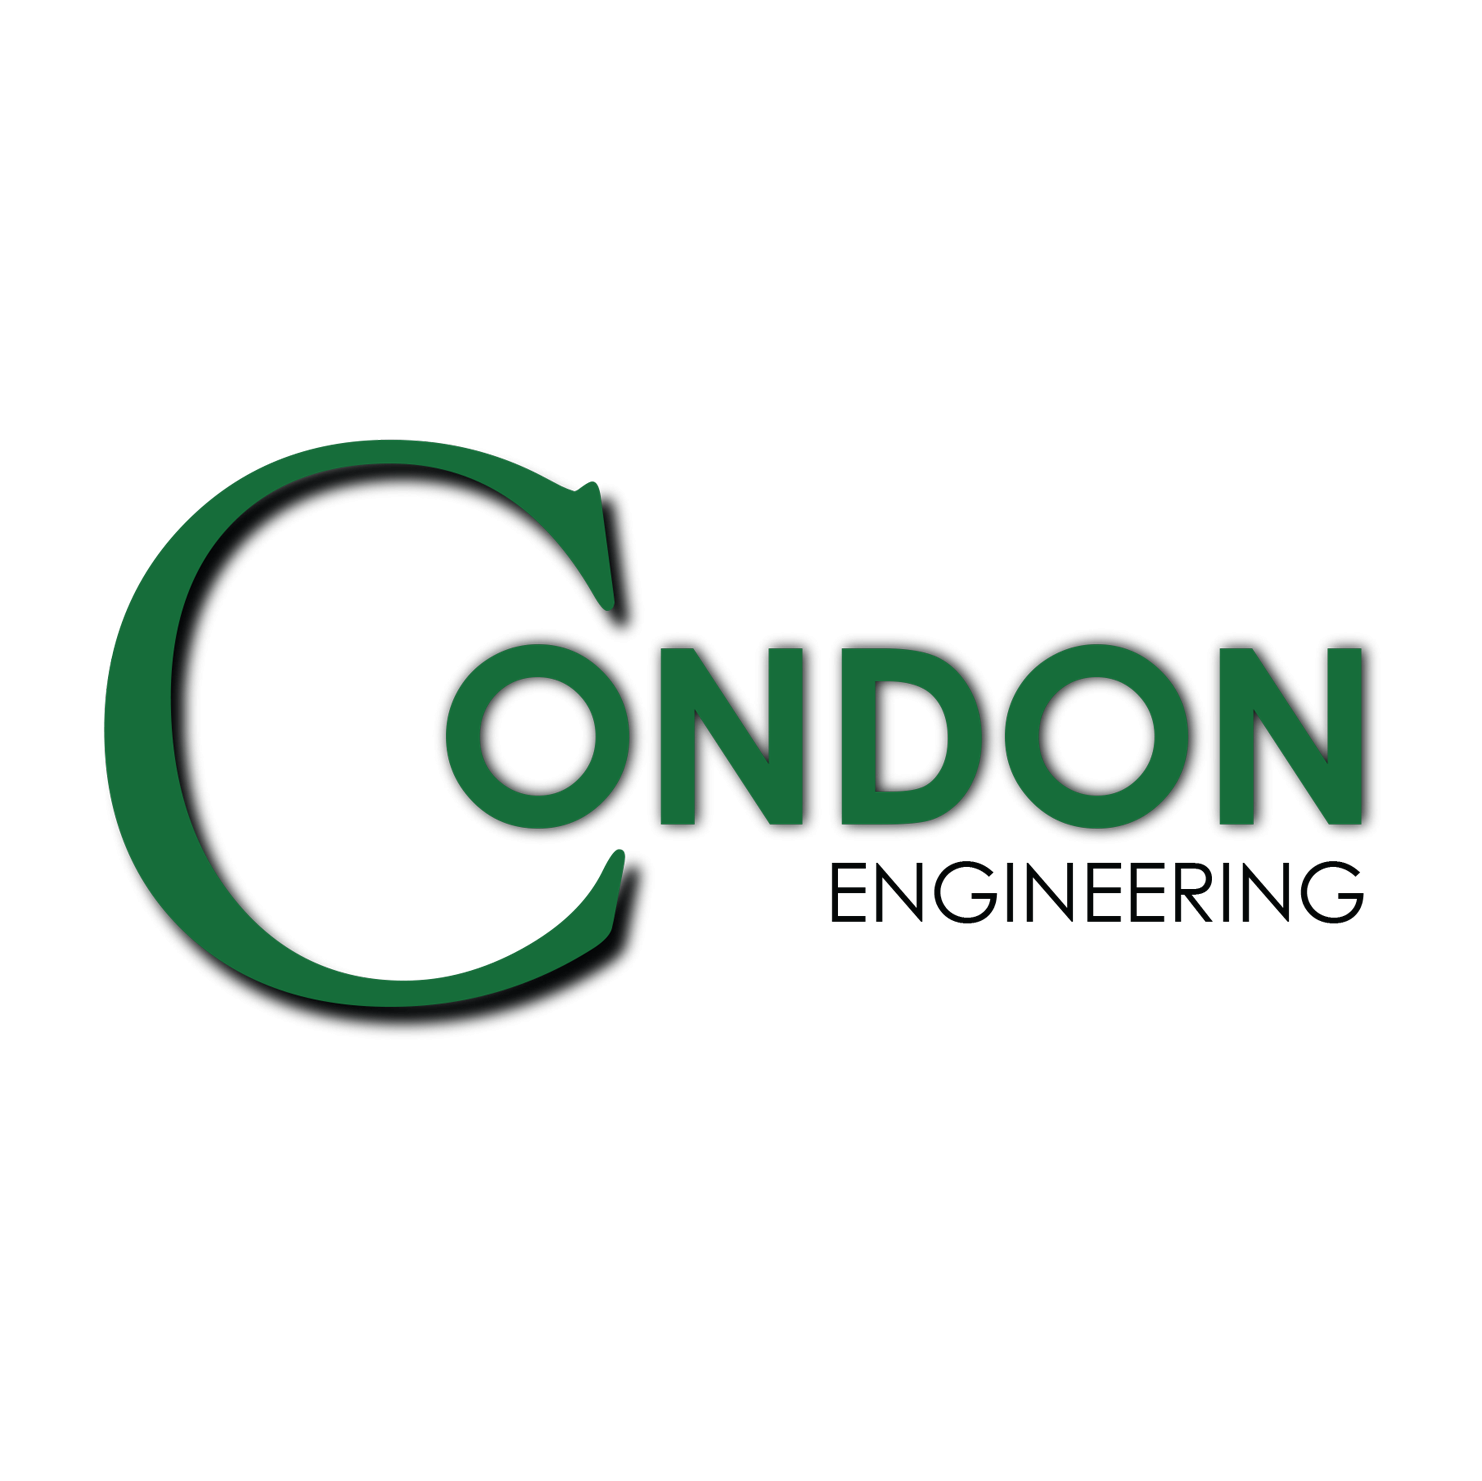 Condon Engineering